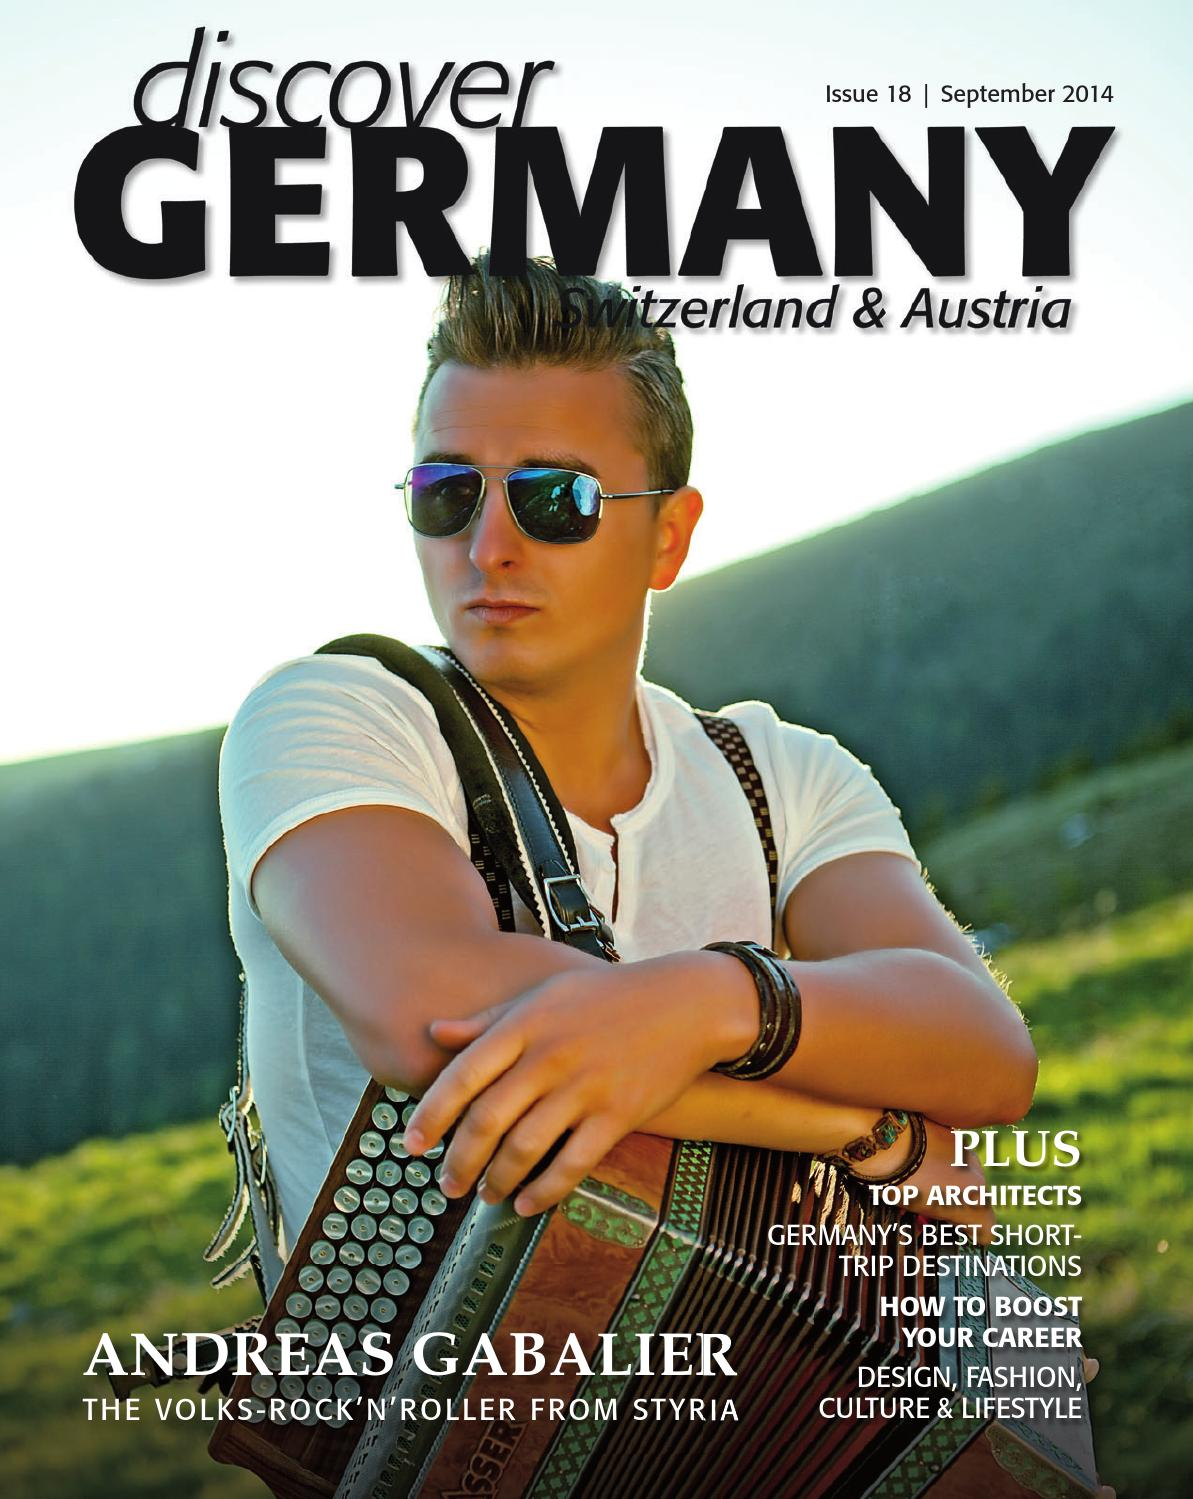 Feuerring Deutschland Discover Germany Issue 18 September 2014 By Scan Group